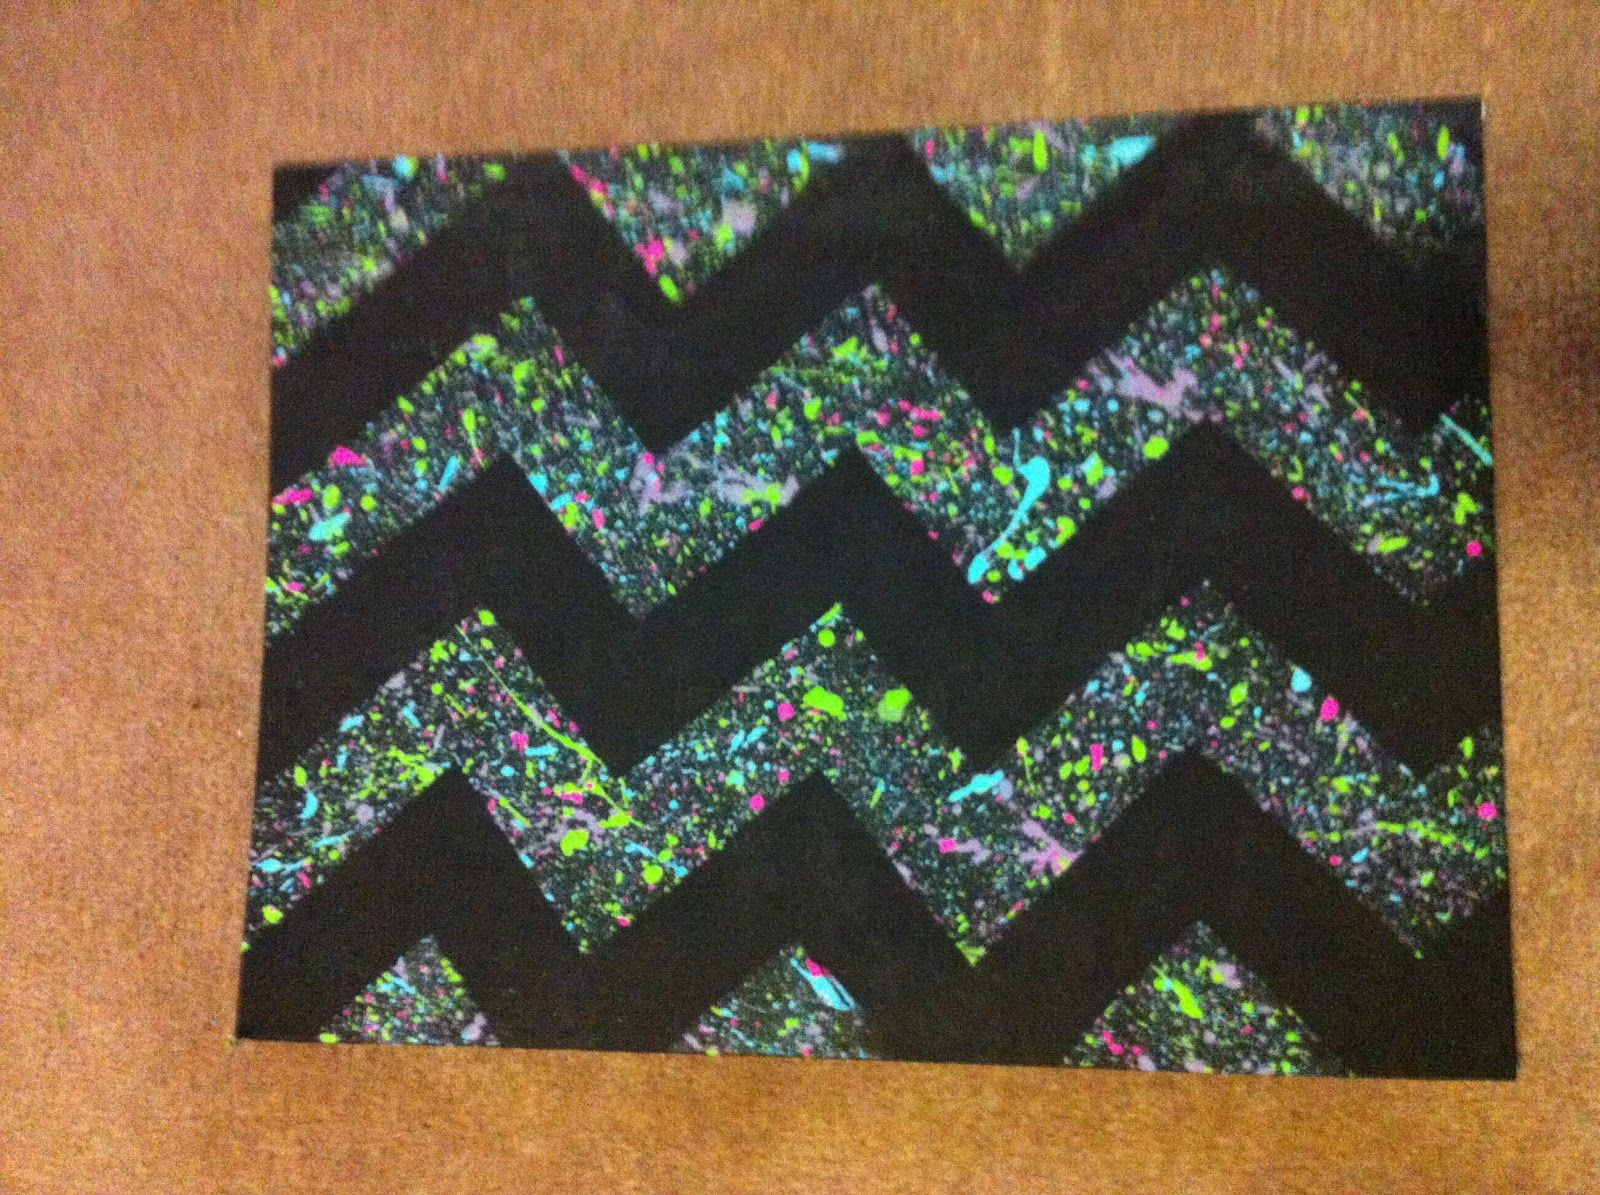 How to make a splattered paint canvas with the chevron pattern.